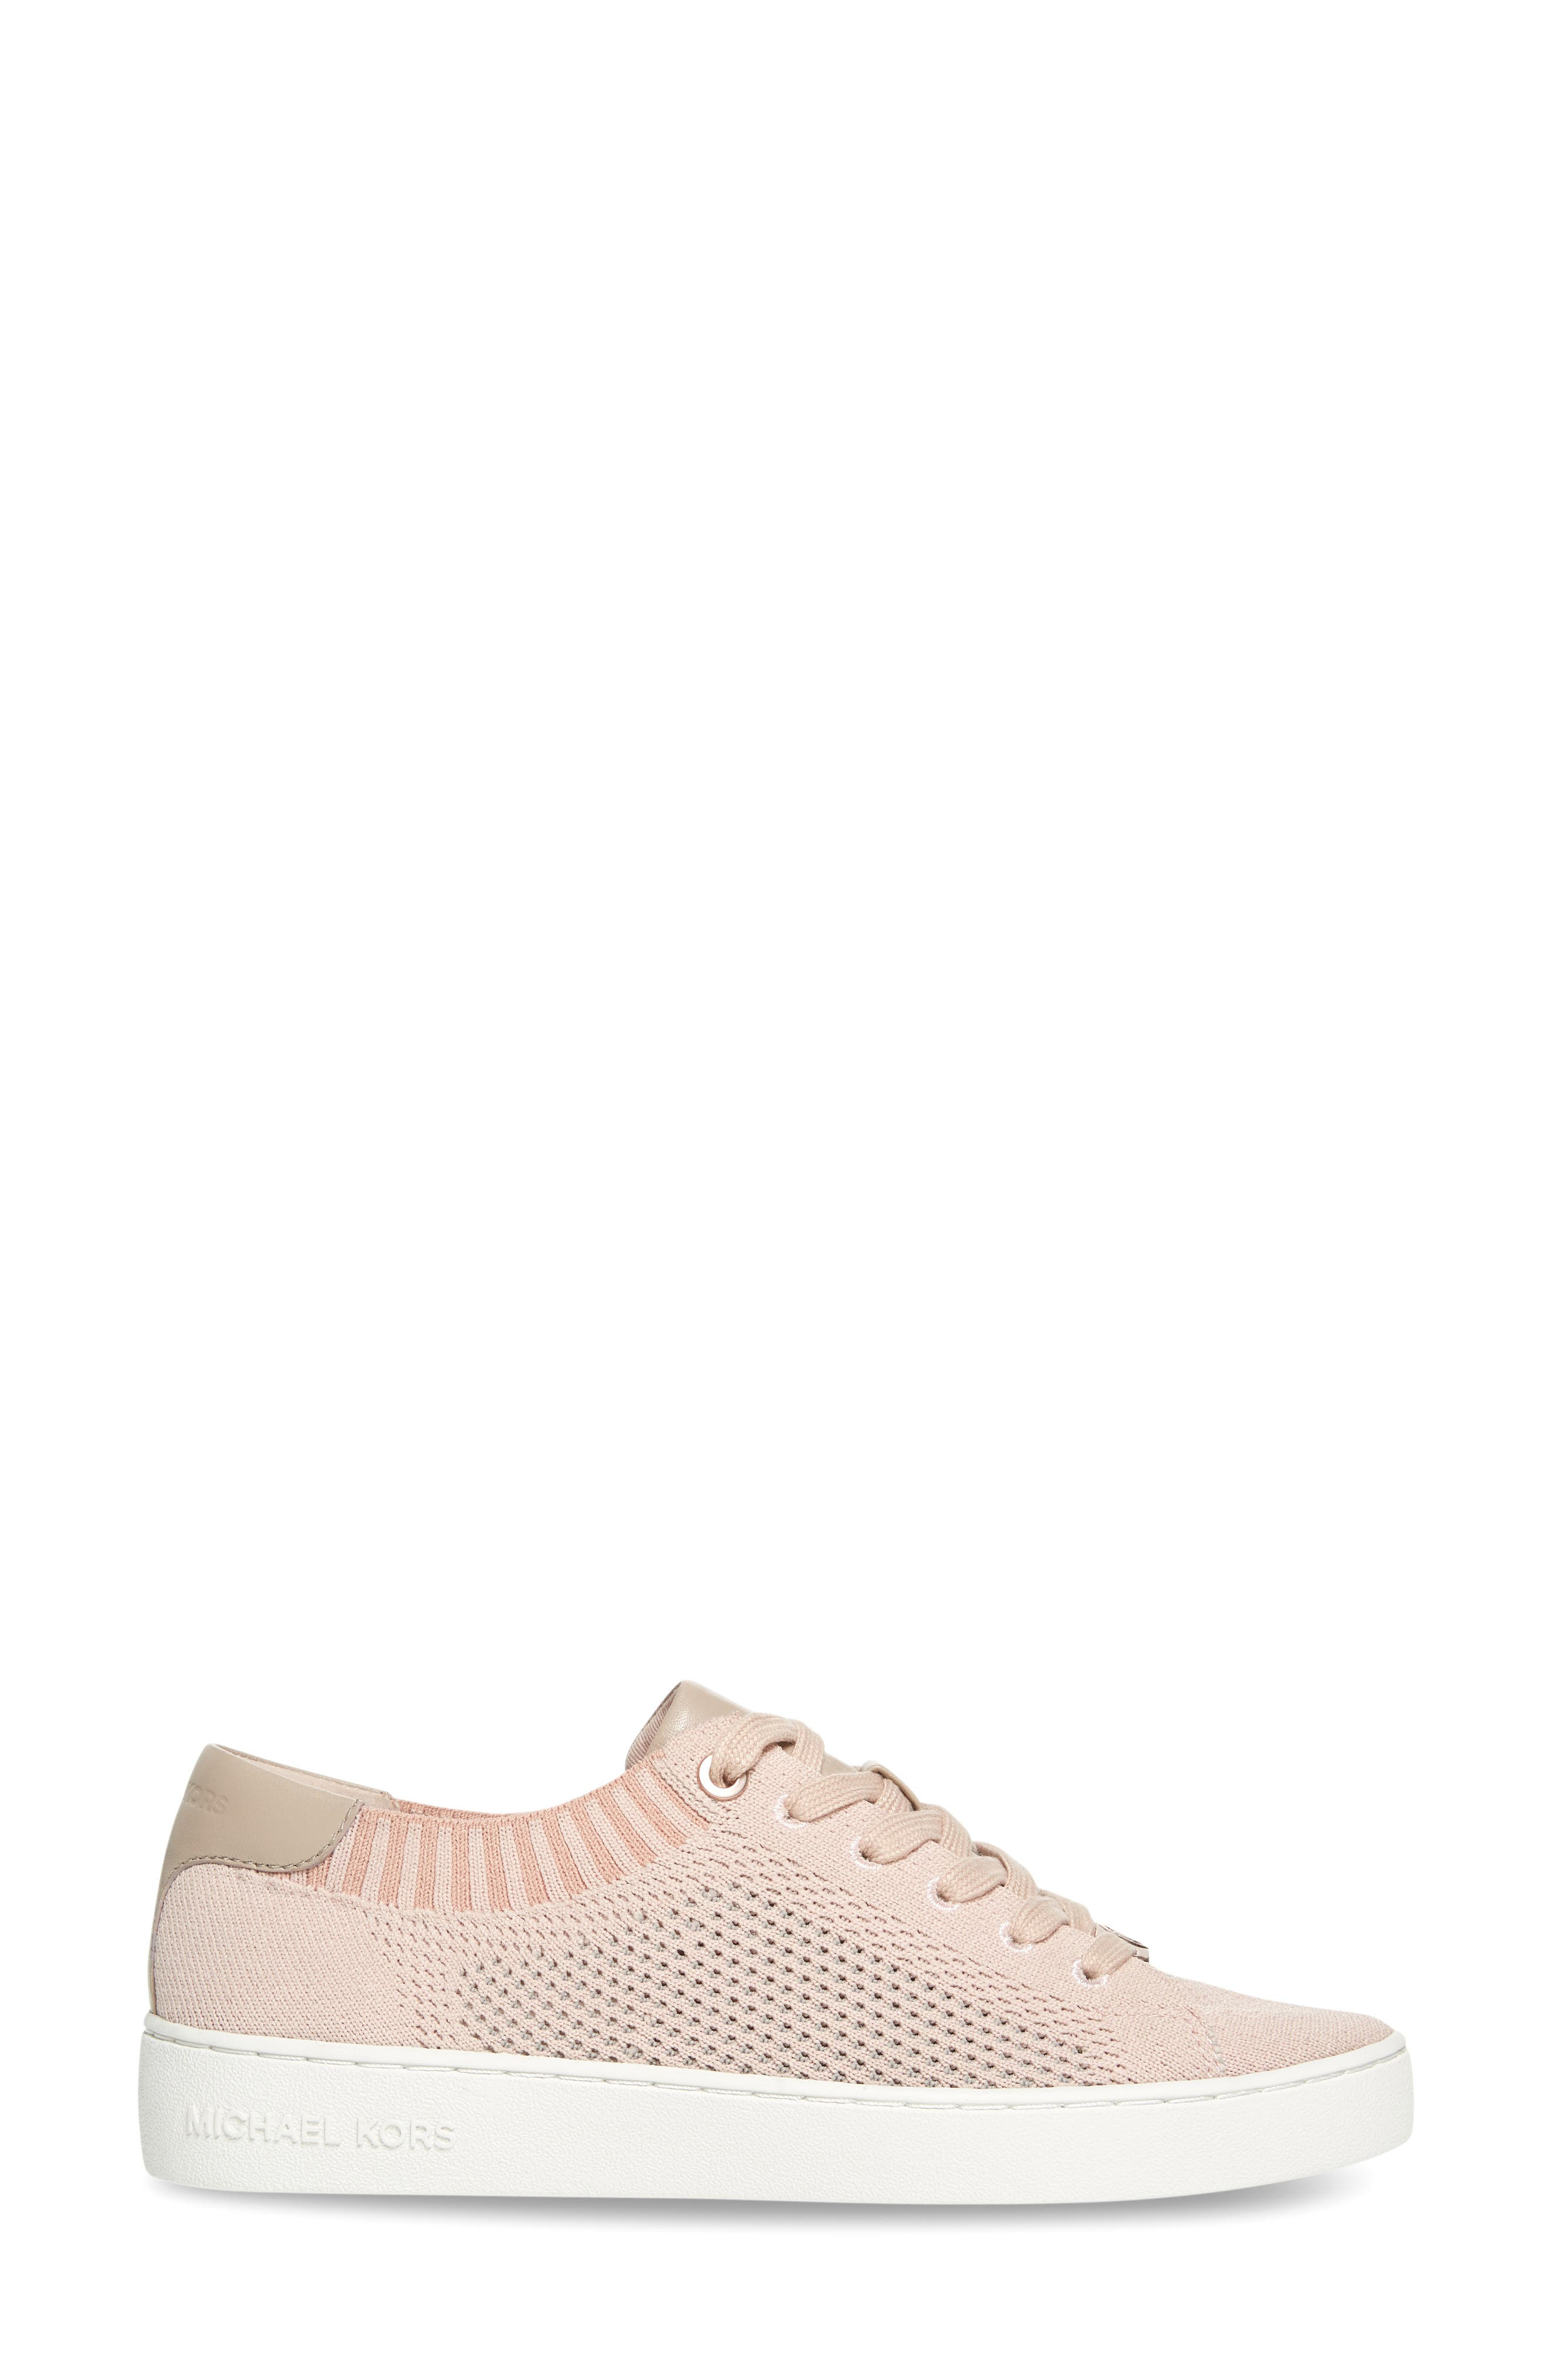 Alternate Image 3  - MICHAEL Michael Kors Skyler Knit Sneaker (Women)